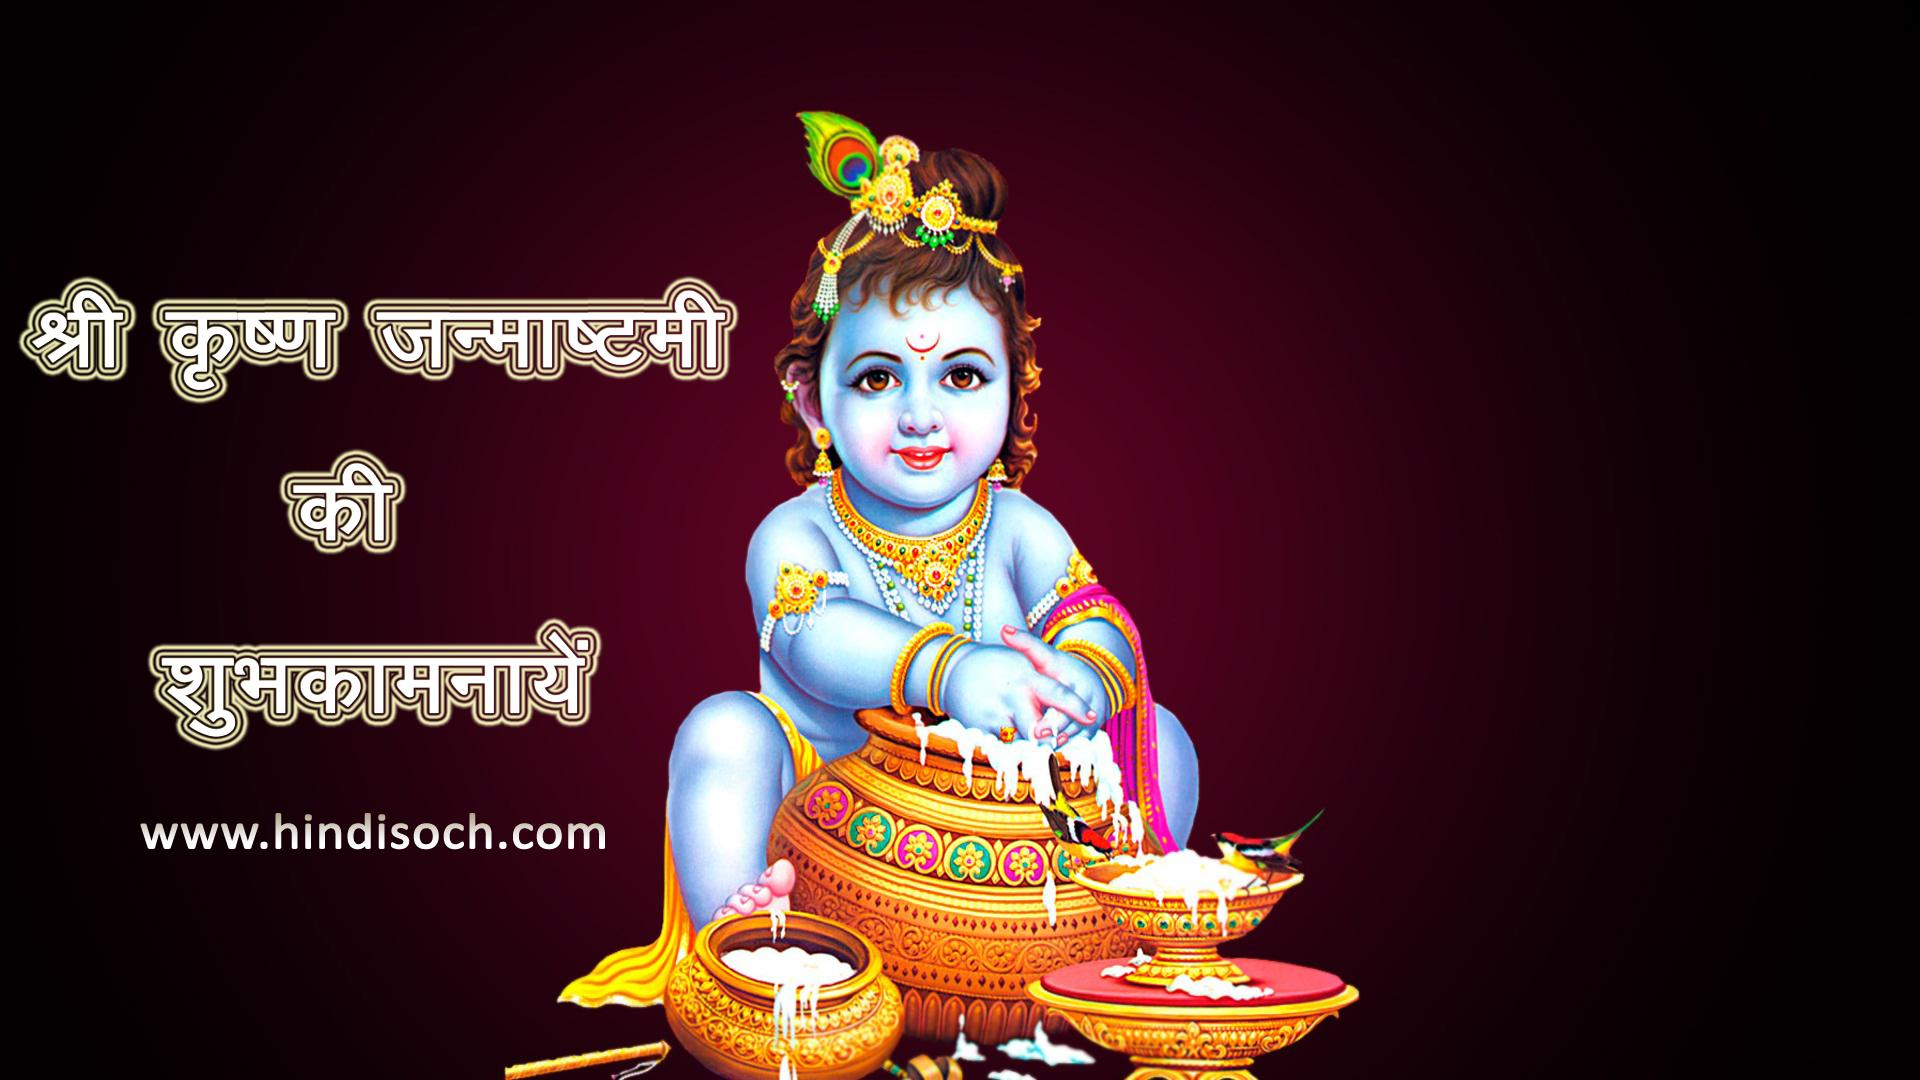 Krishna Wallpaper Free Download For Mobile Photos Images